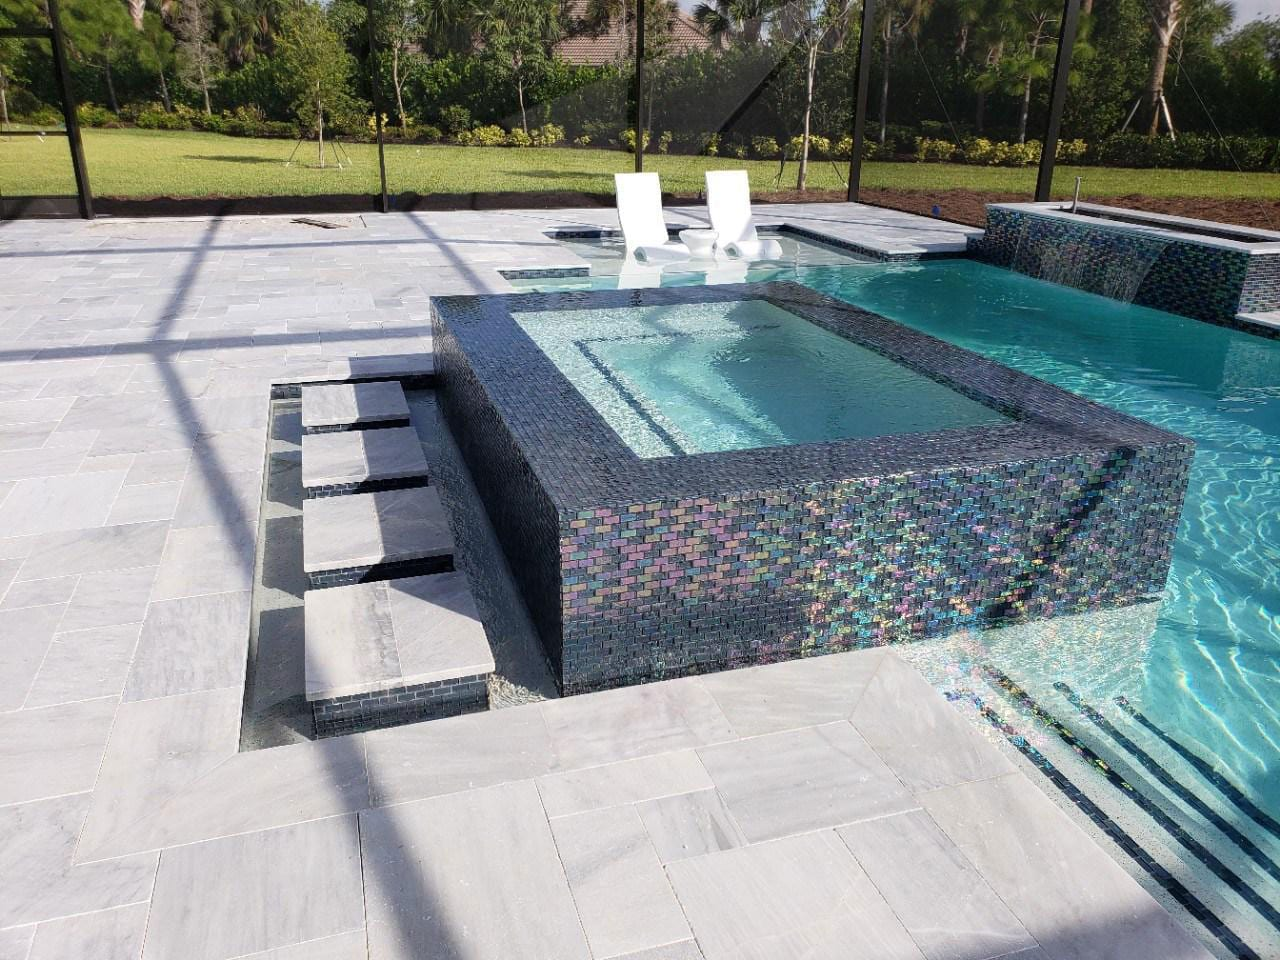 Stoneline-Group-Ice-White-Marble-Collection-Marble-Tumbled-Paver-Pool-deck-backyards-patio-Walk-Way-Pictures